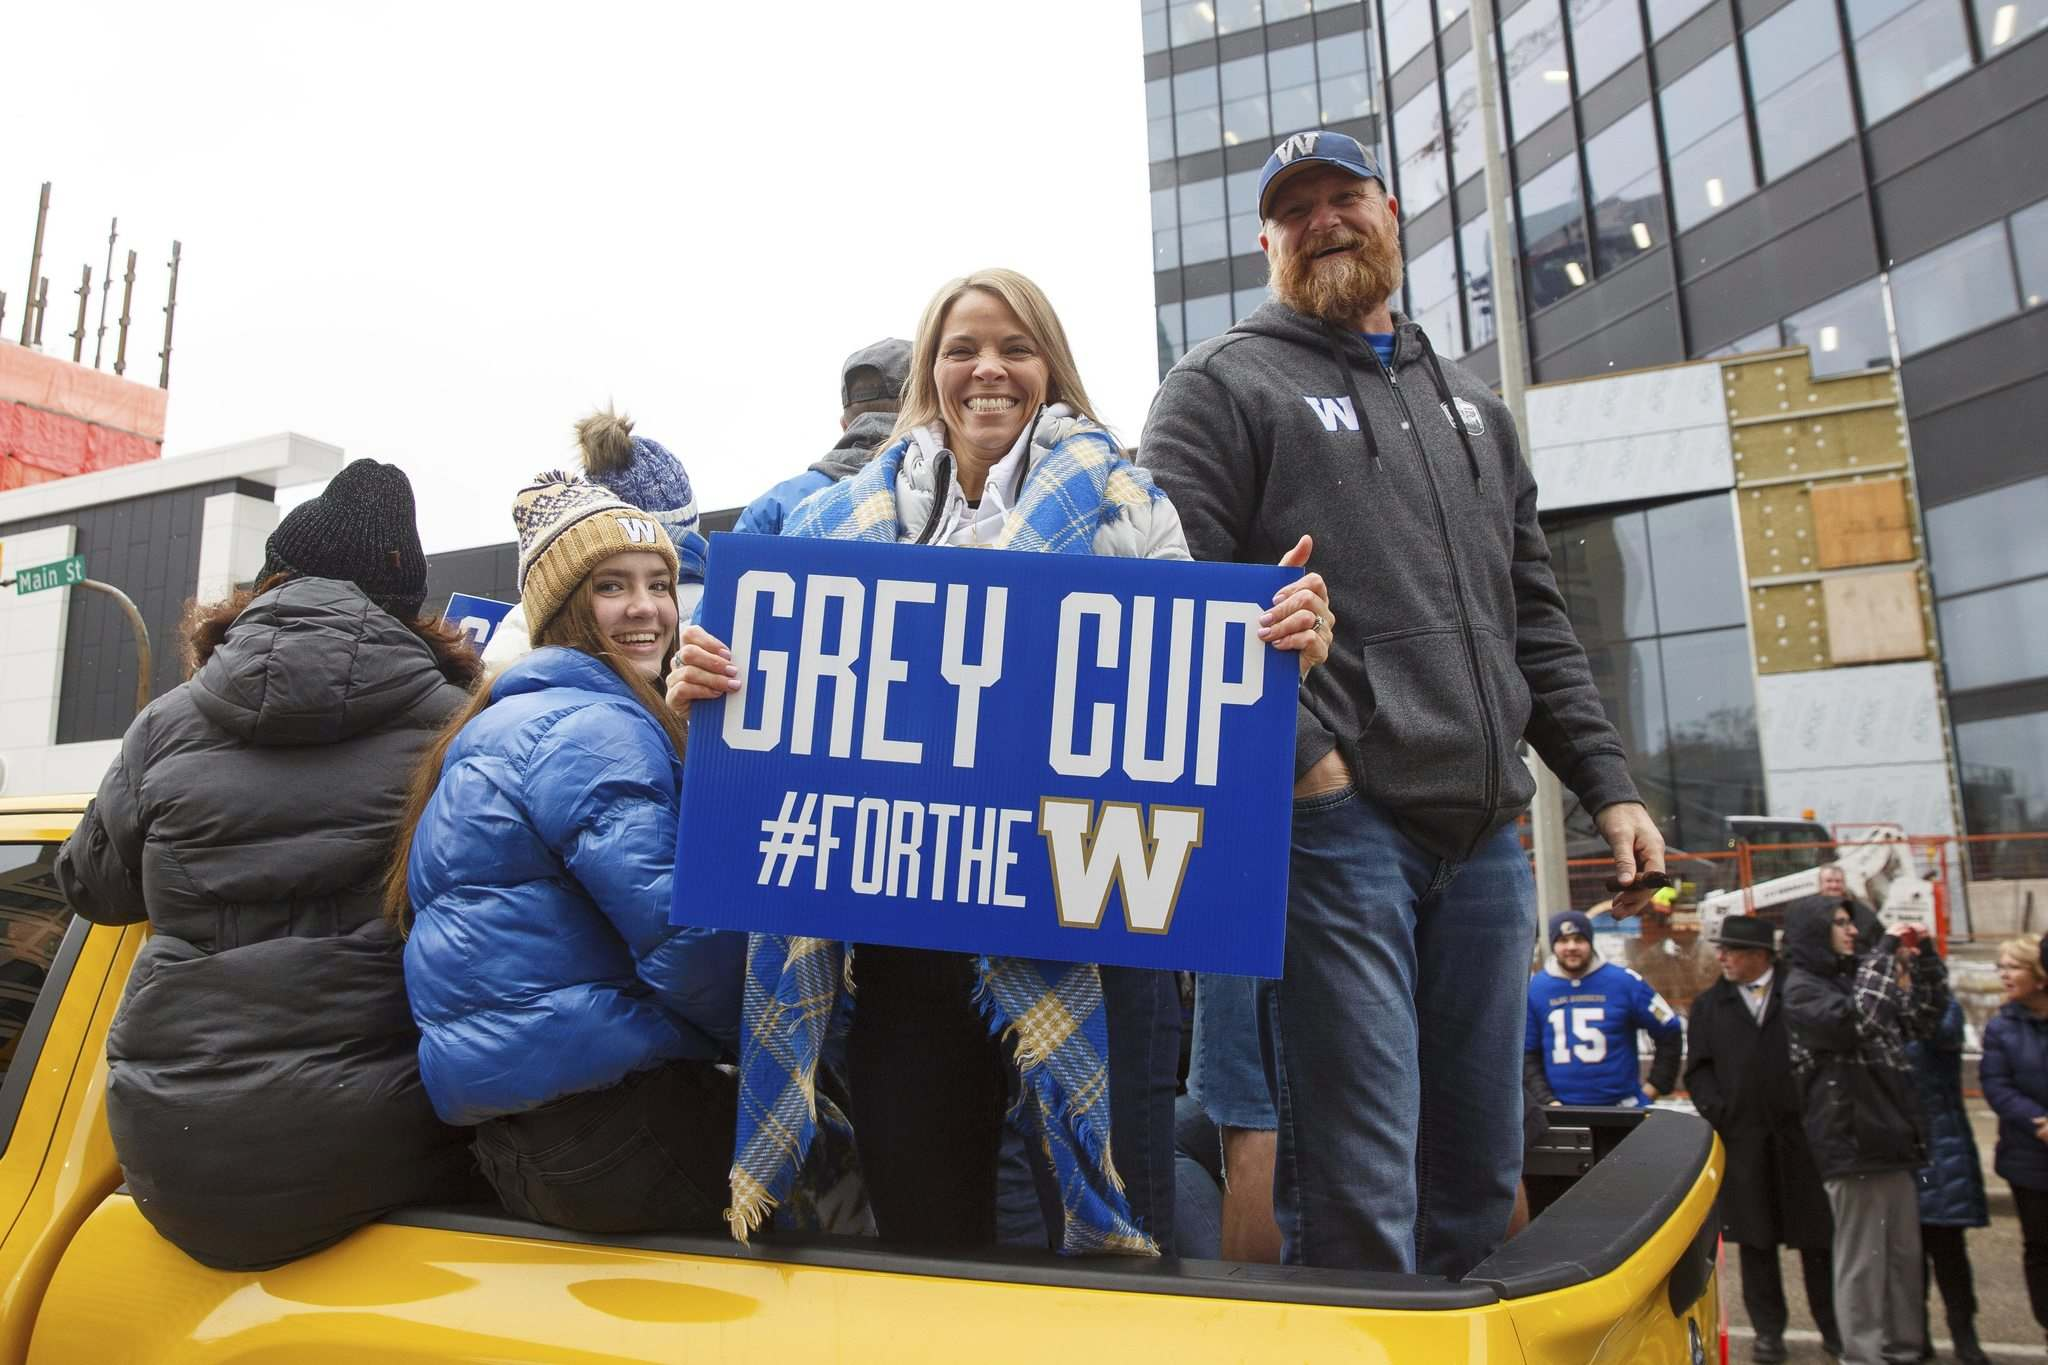 Winnipeg Blue Bomber head coach Mike O'Shea with his wife, Richere, and daughters, during the Grey Cup parade. (Mike Deal / Winnipeg Free Press files)</p>